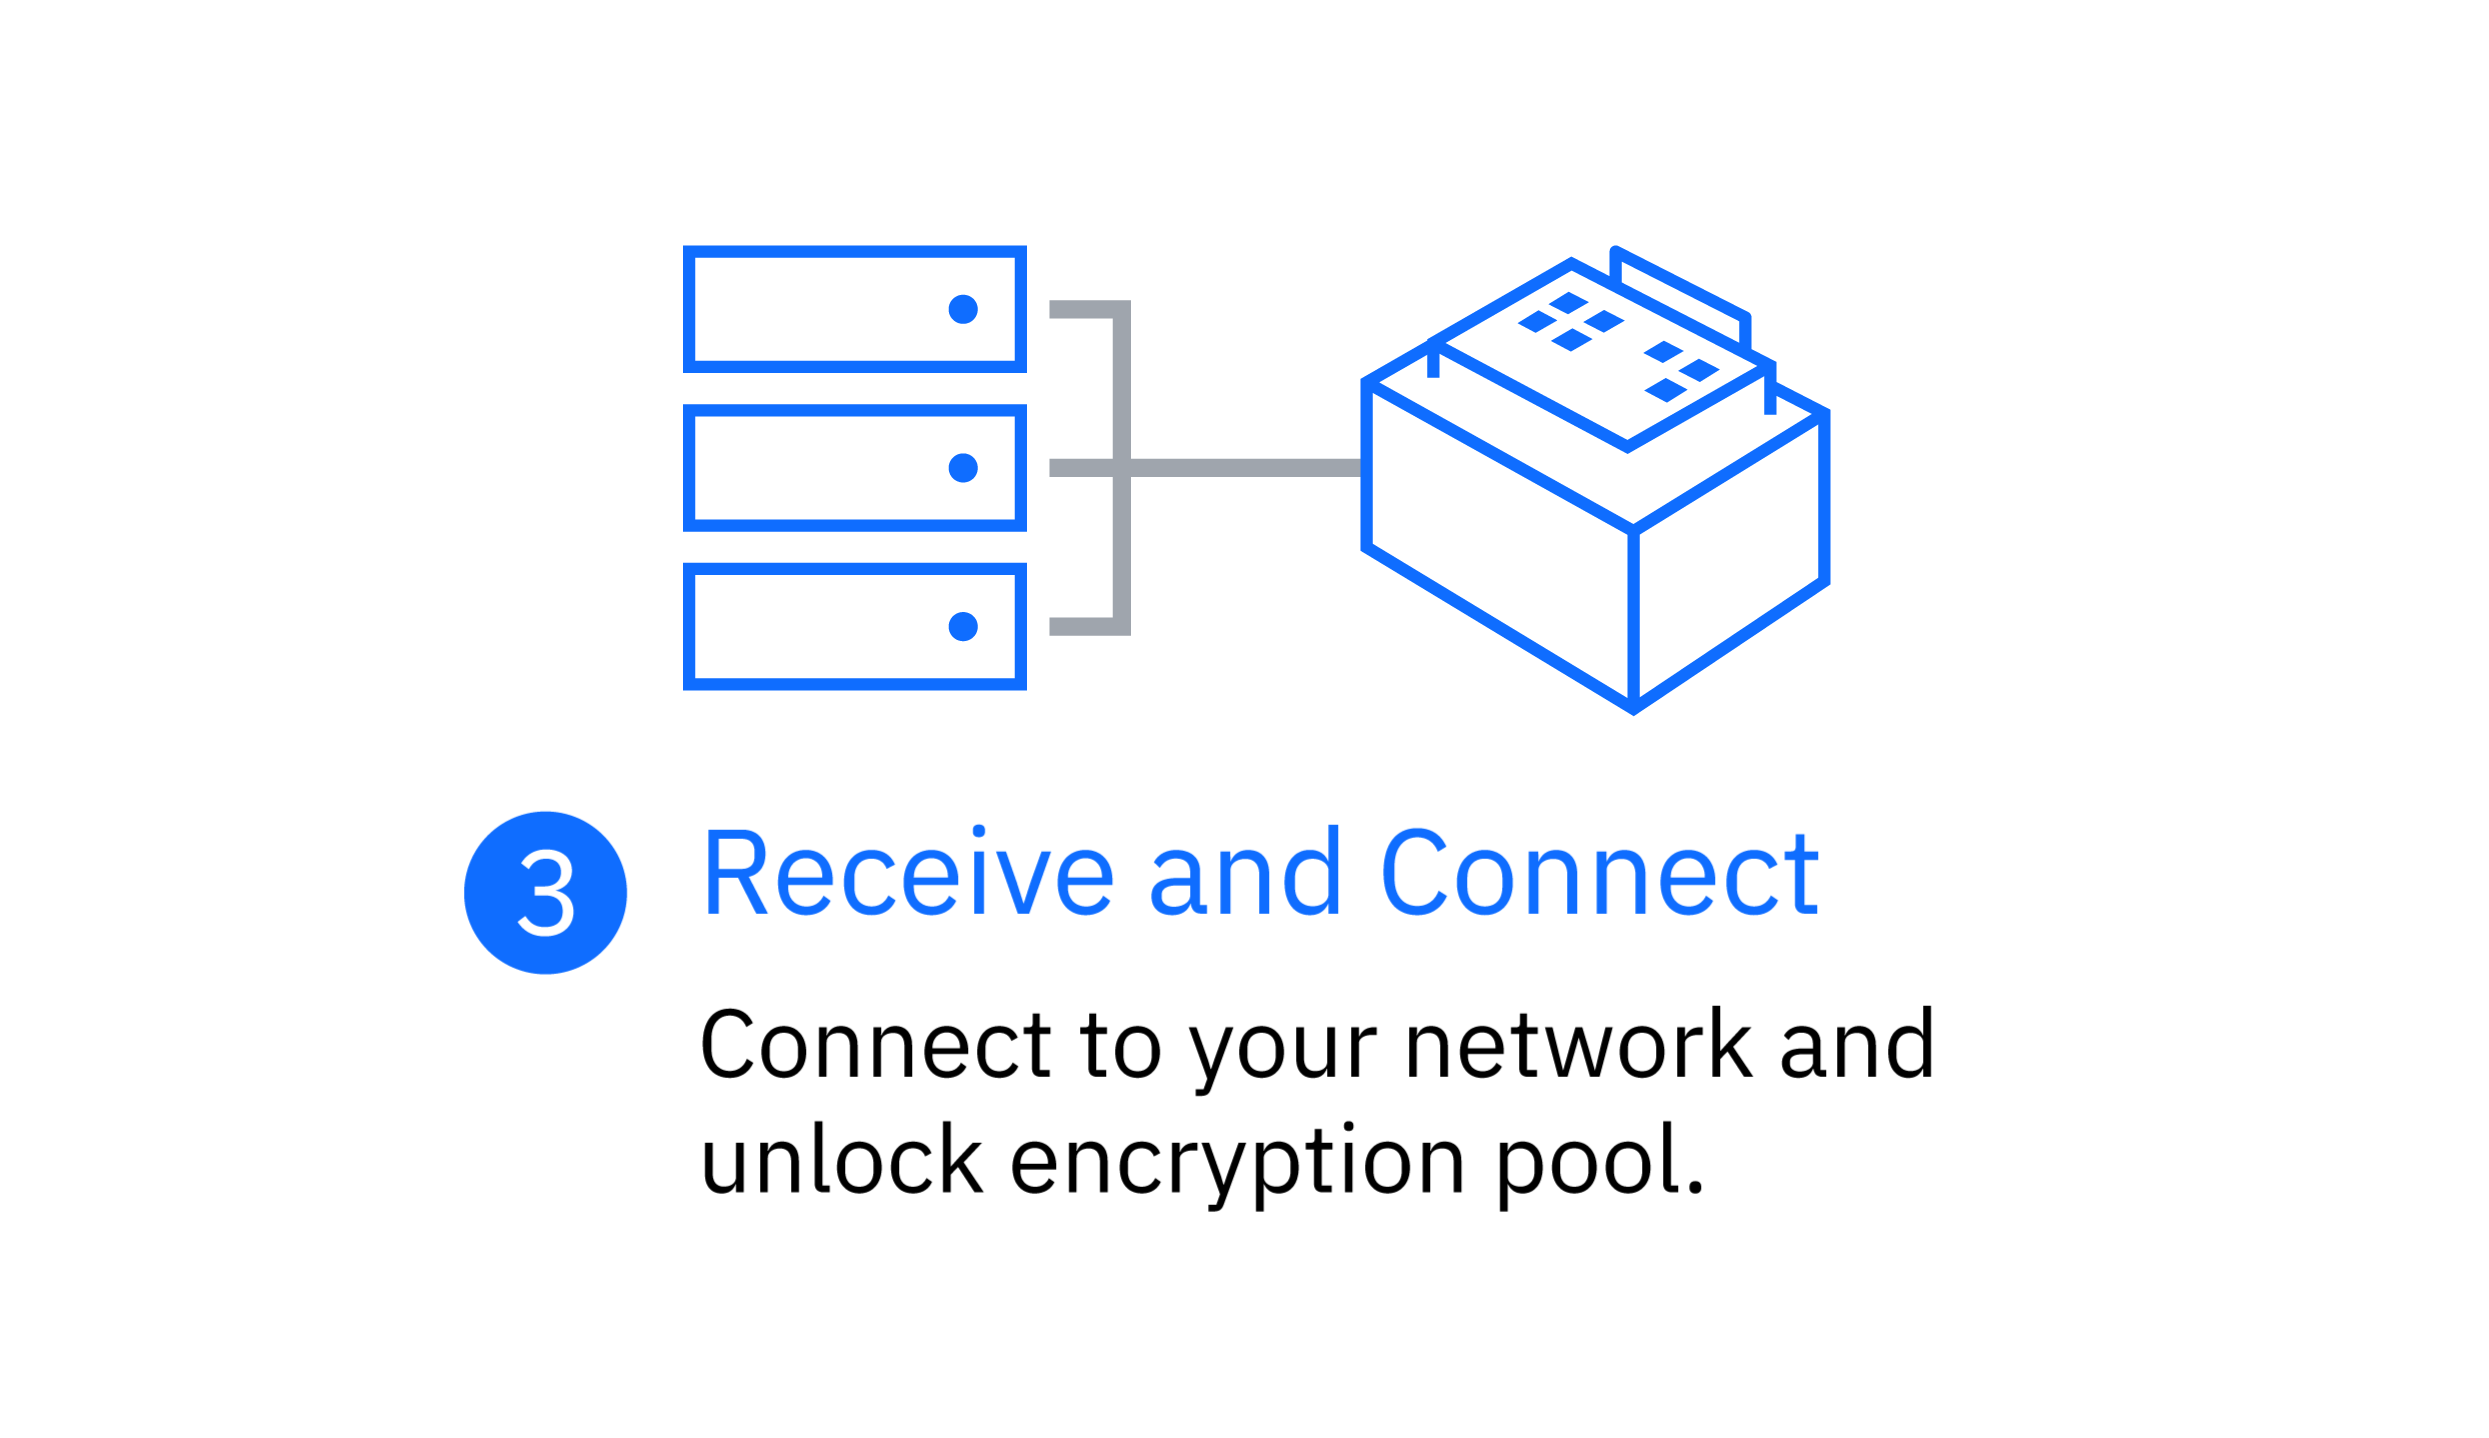 Step 3: Receive and connect